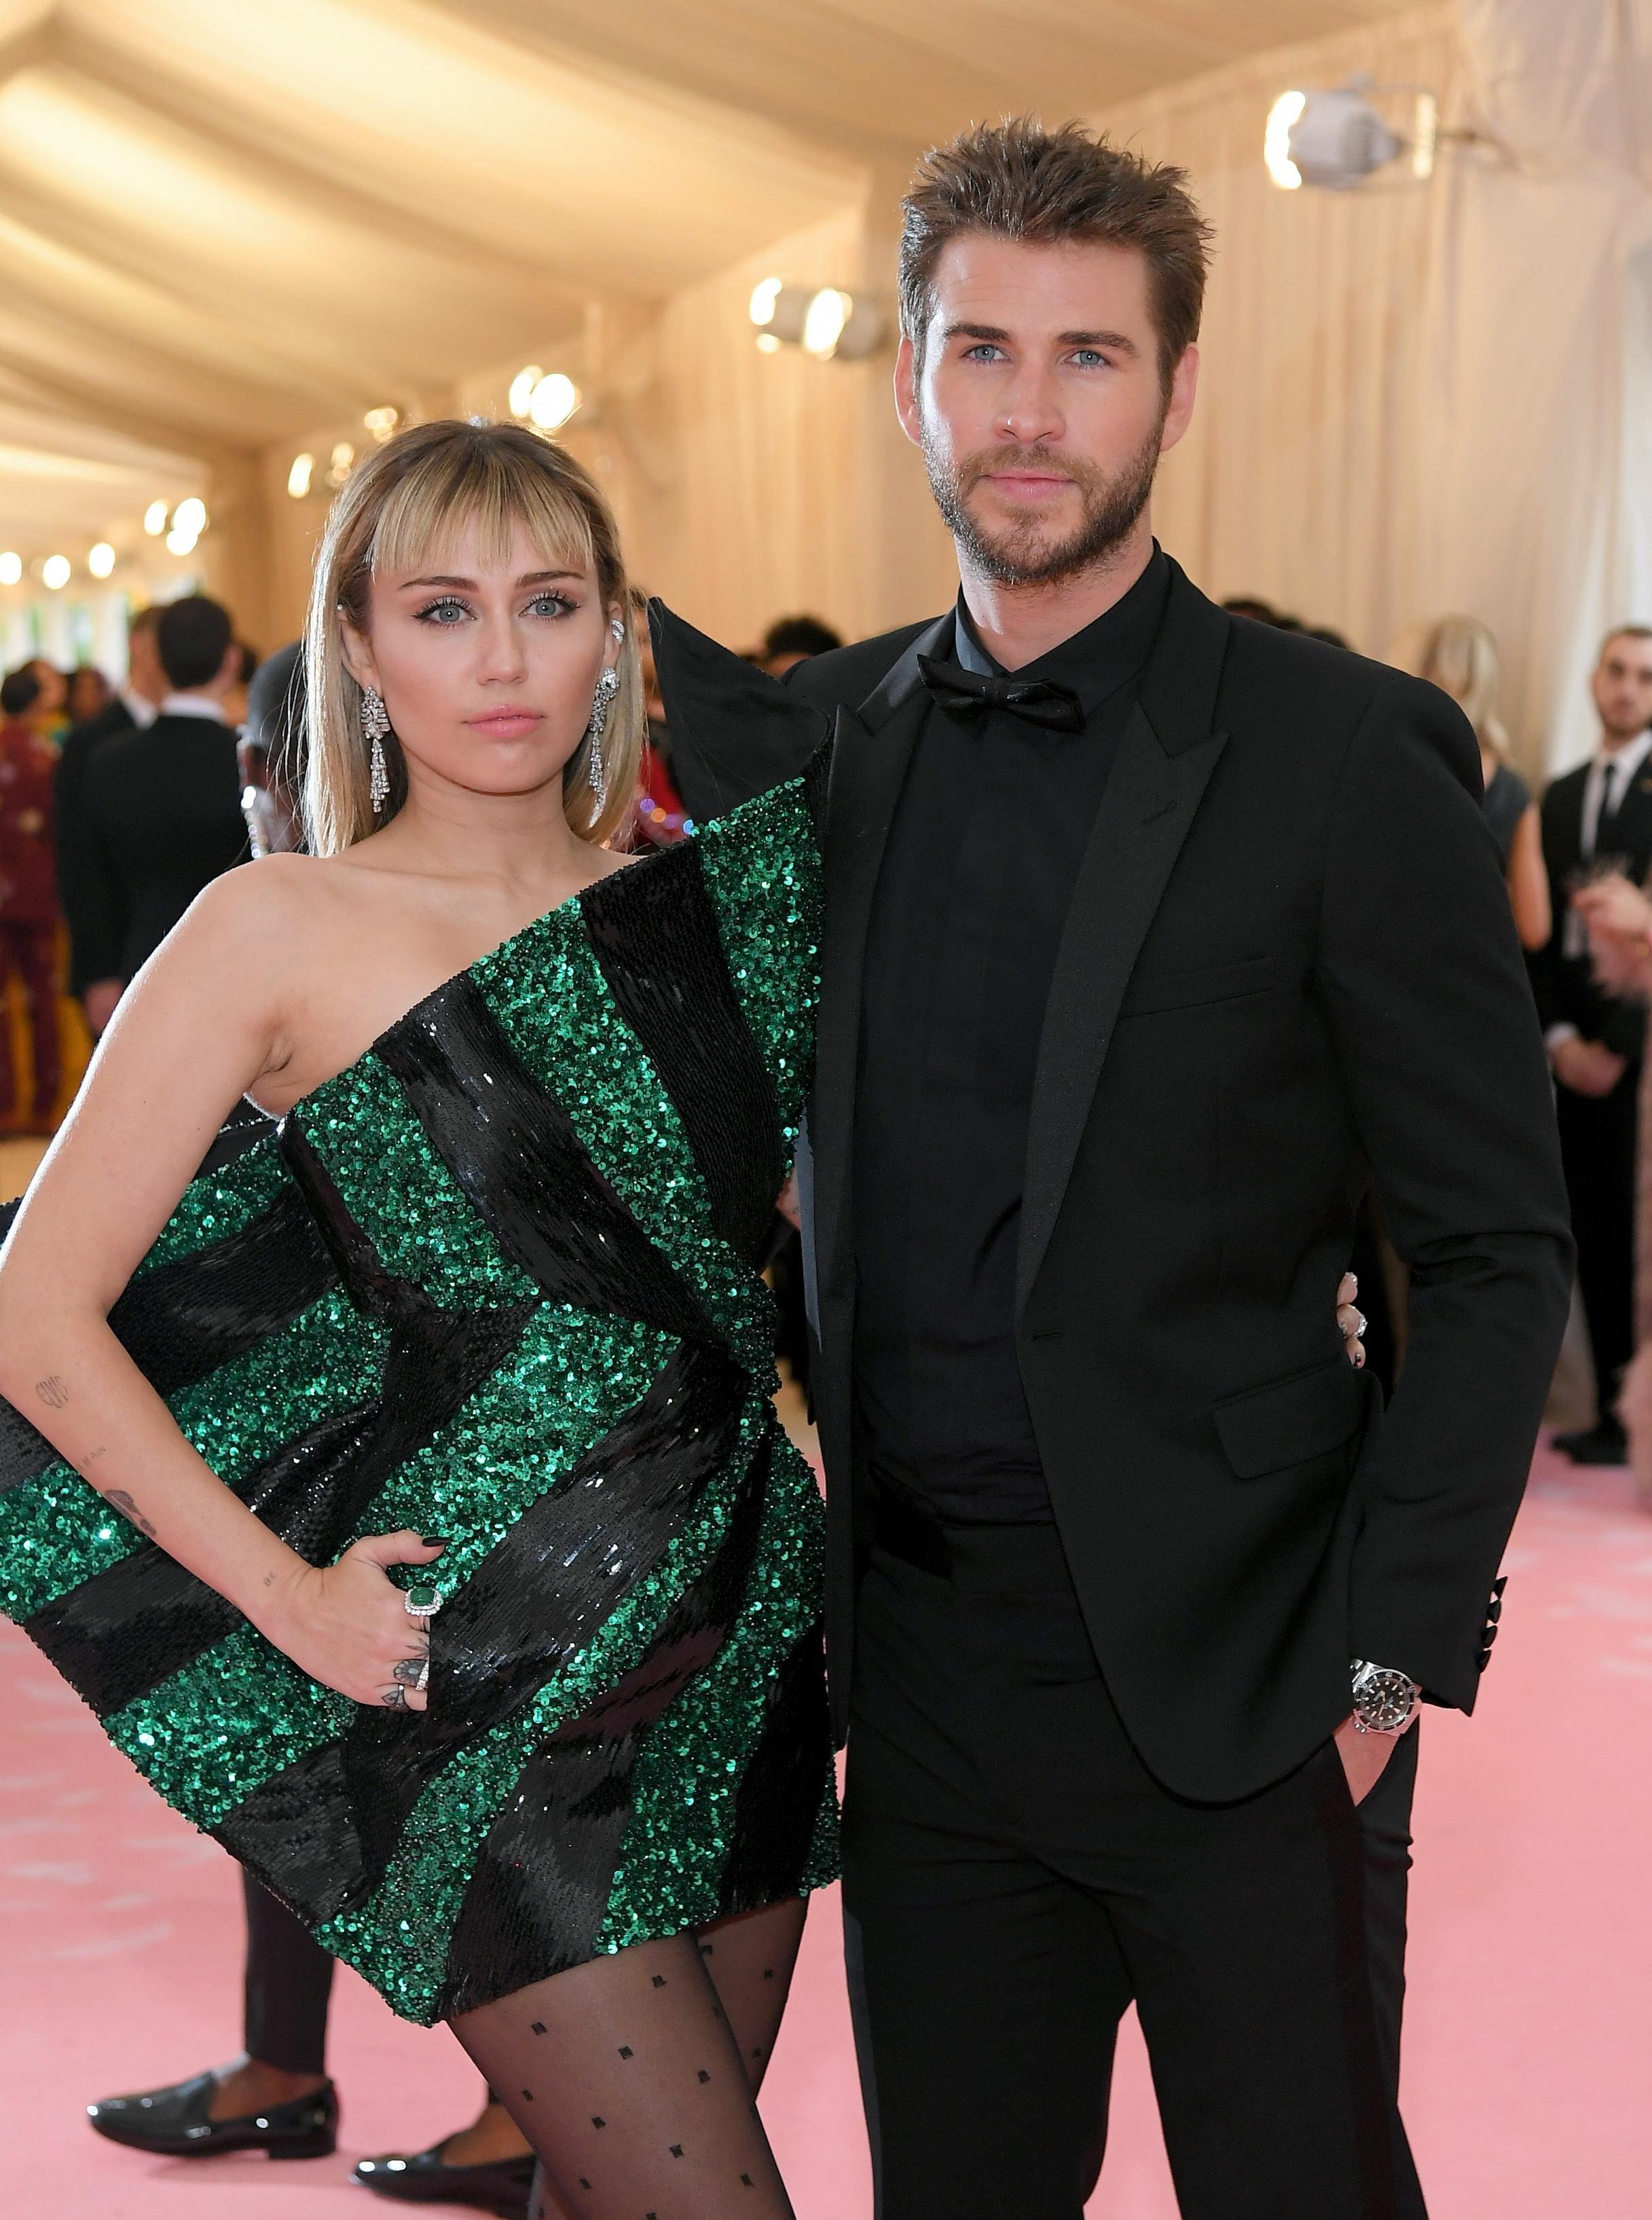 Miley Cyrus releases break-up song 'Slide Away'